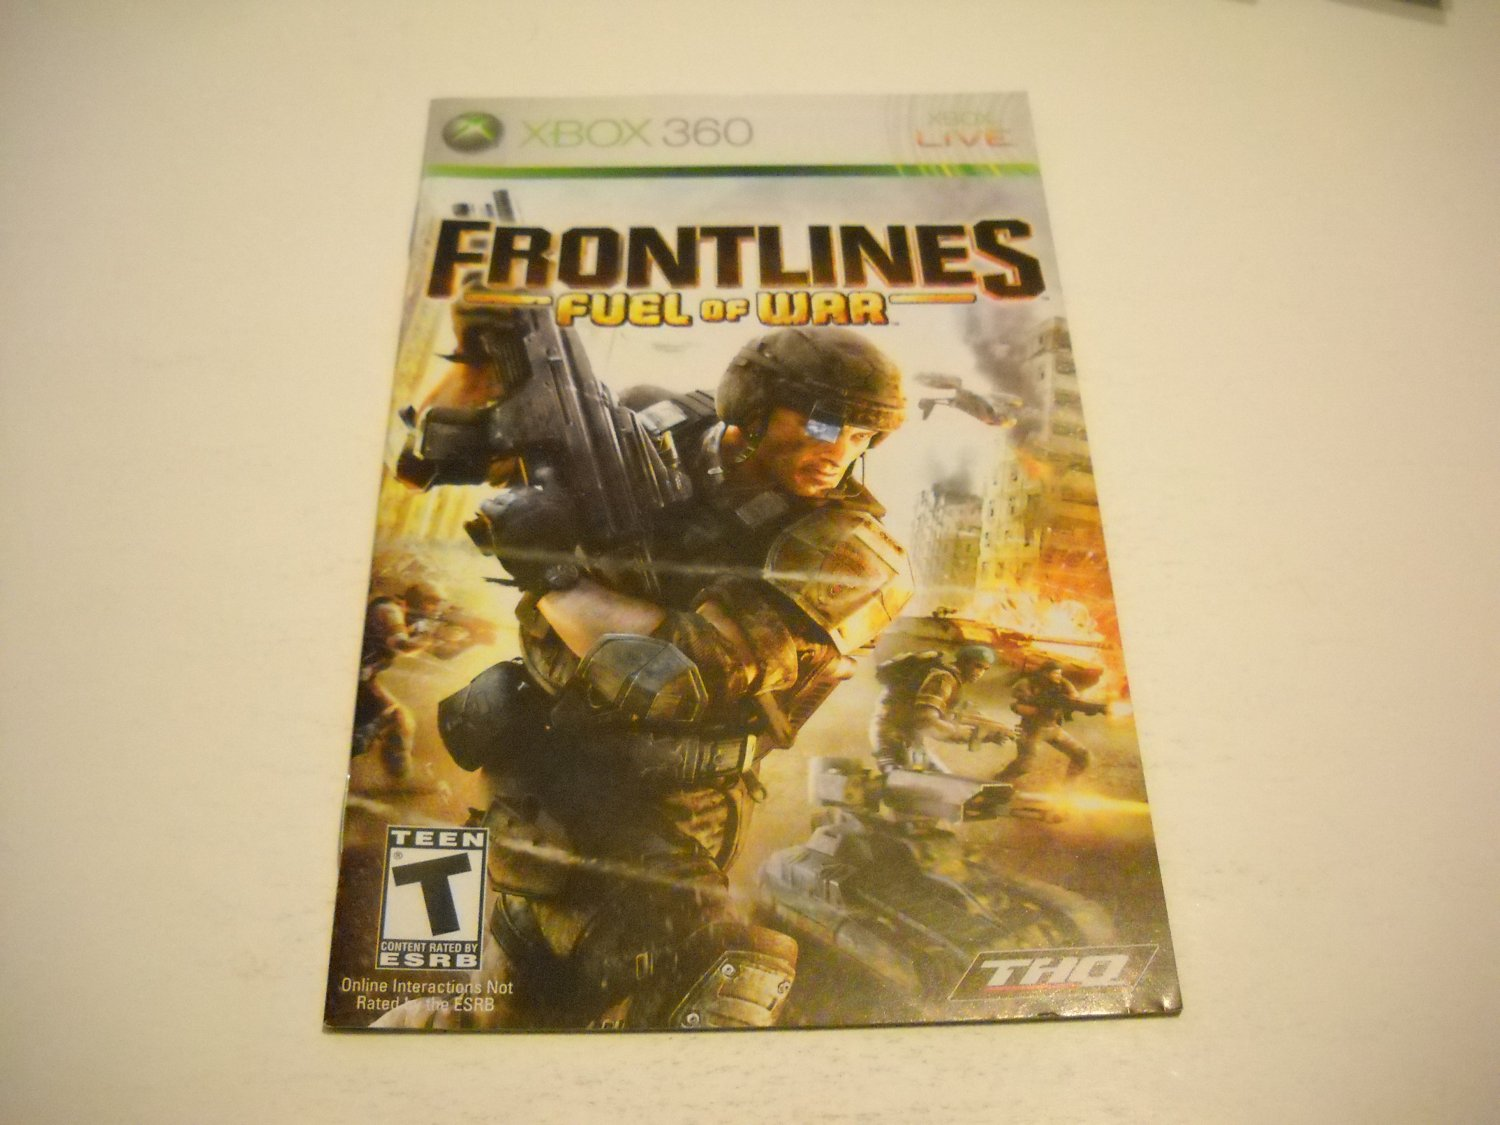 Manual ONLY ~  for Frontlines Fuel of War   - Xbox 360 Instruction Booklet